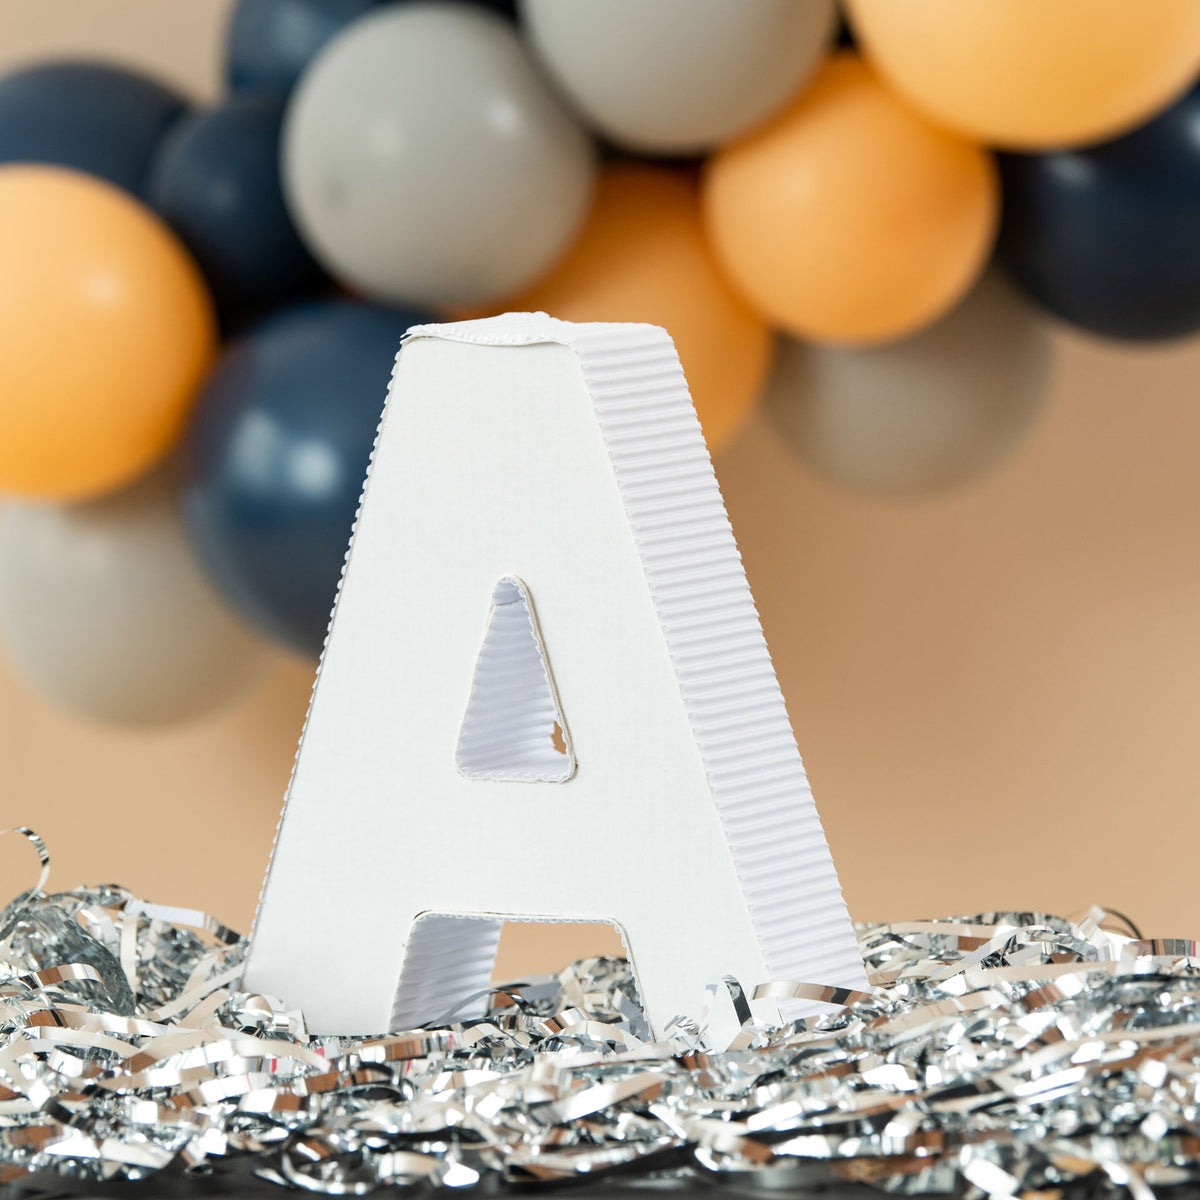 12 in. 3D Tabletop Letter A Prop